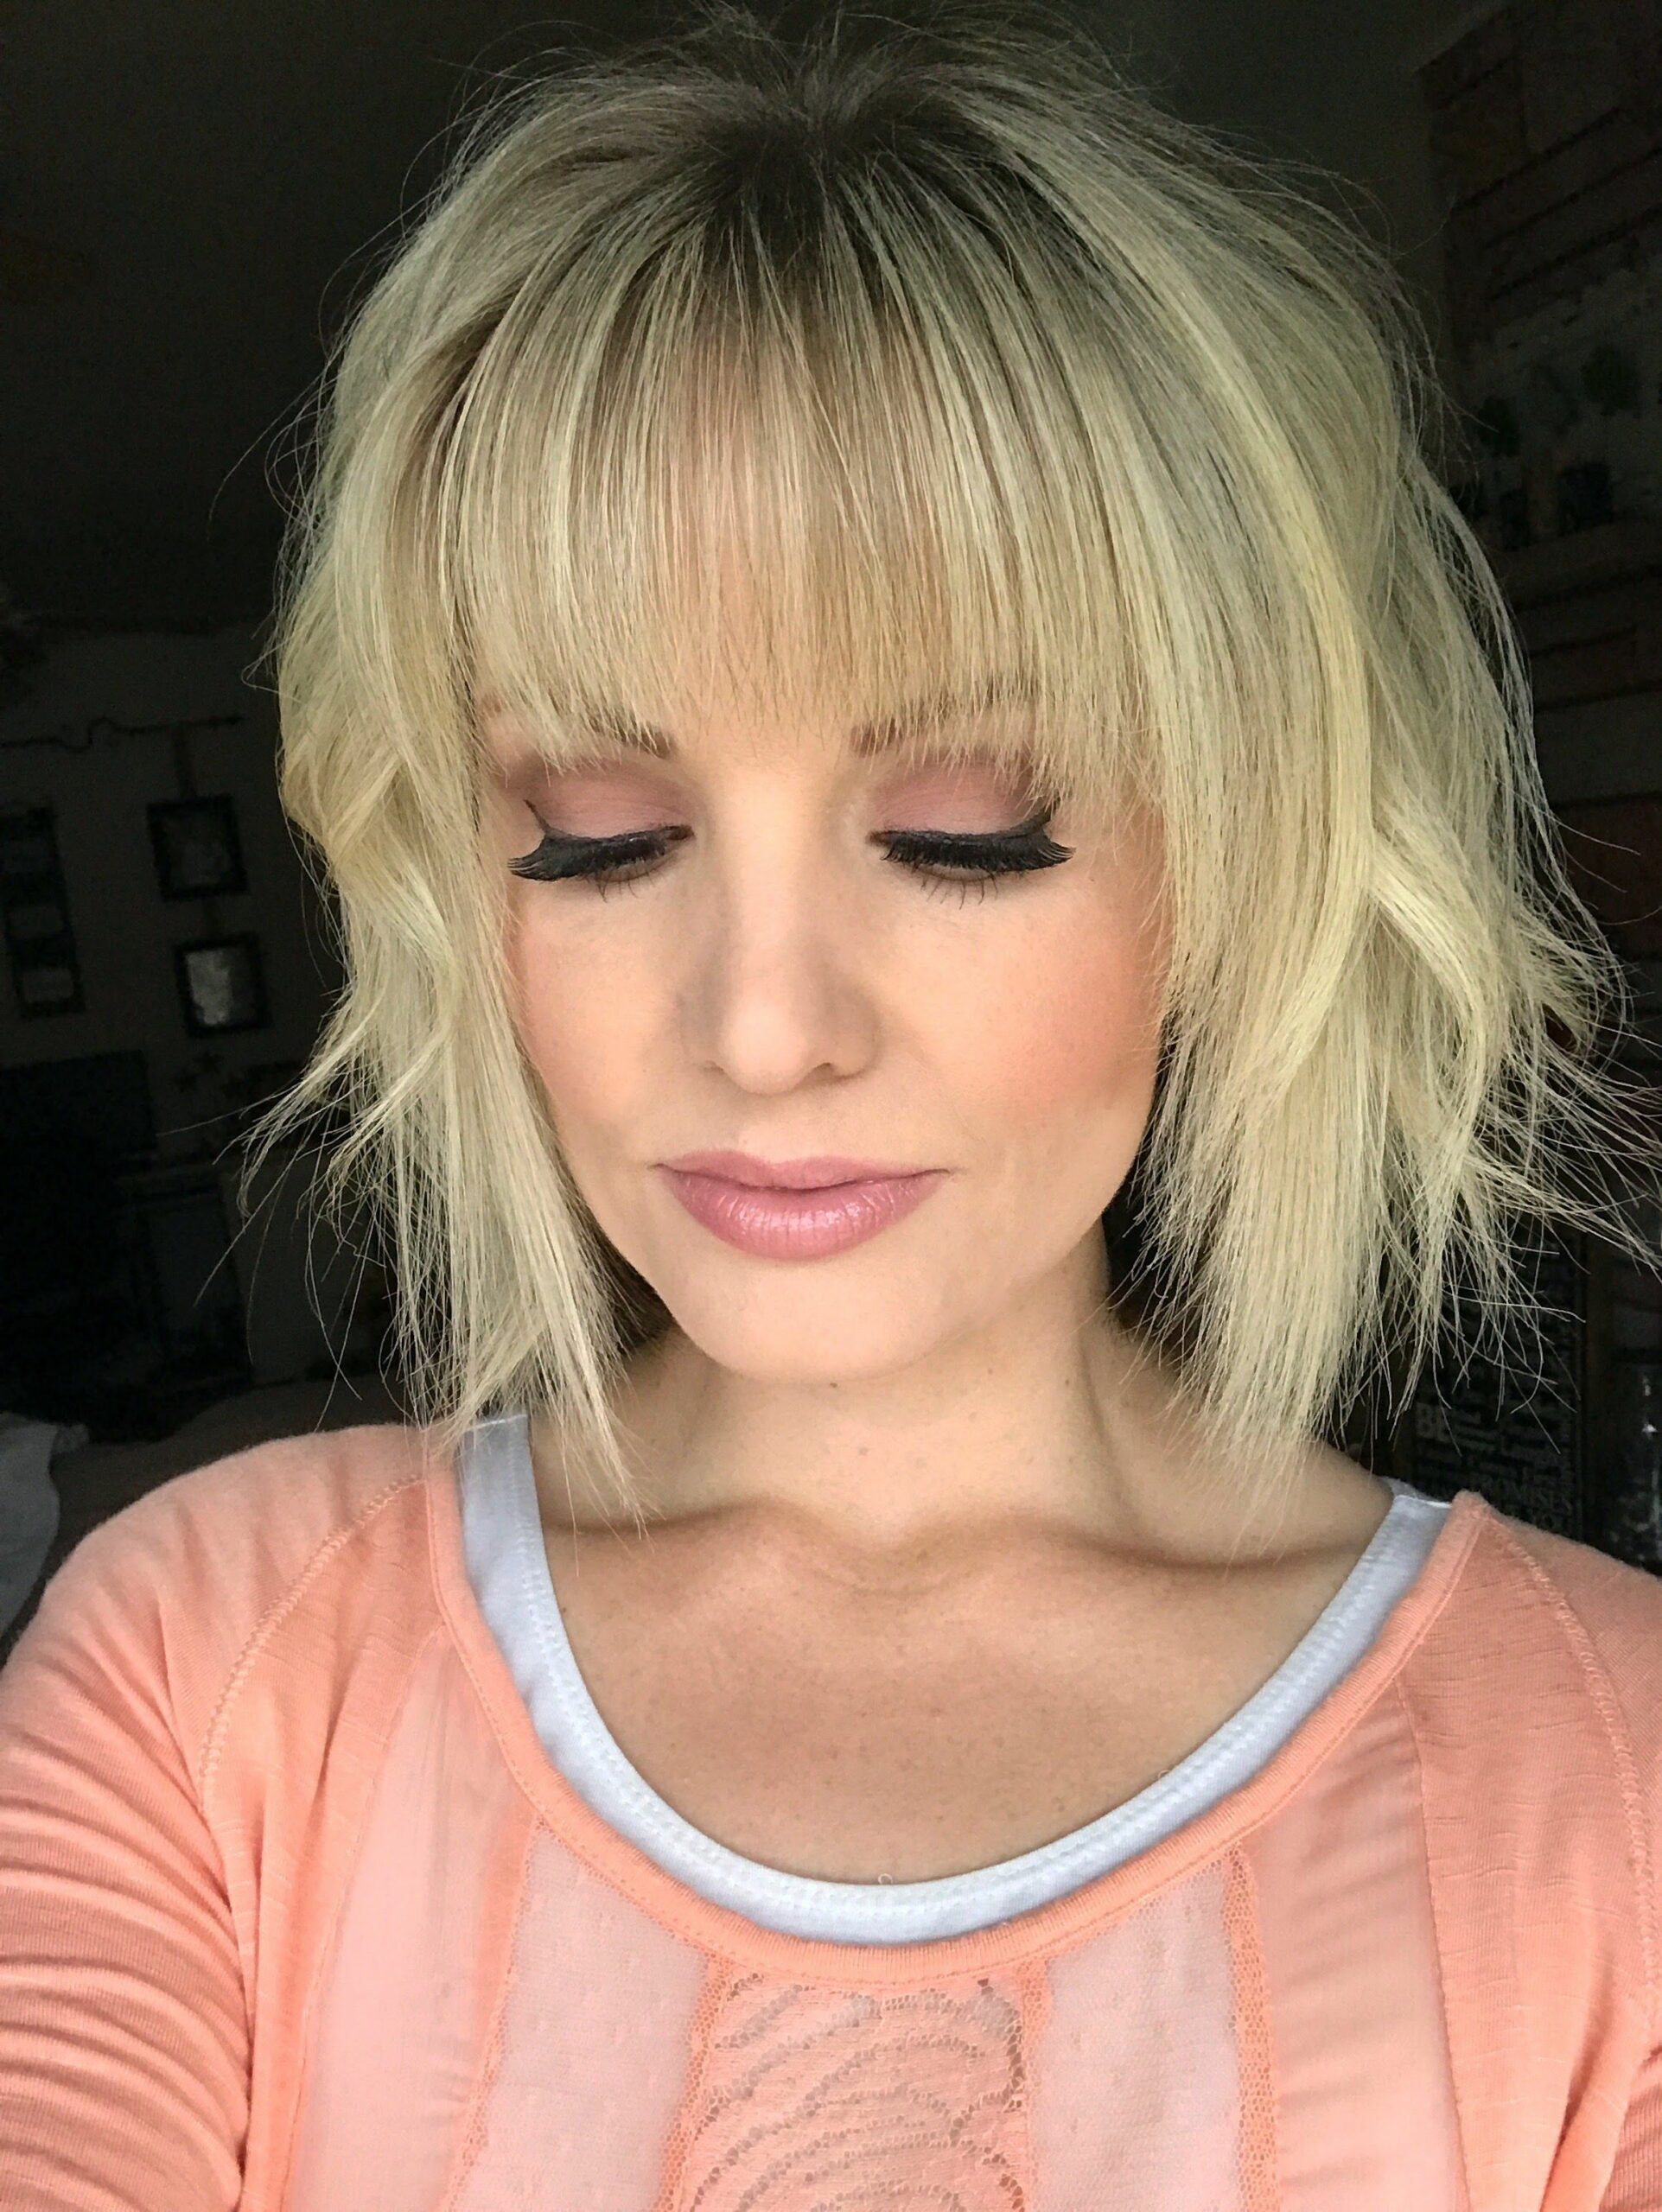 47 Best Shag Haircuts for Women over 50 That Is Easy To Try in 2021 1cee0230f87067b7dfc8c104302f65c4-scaled